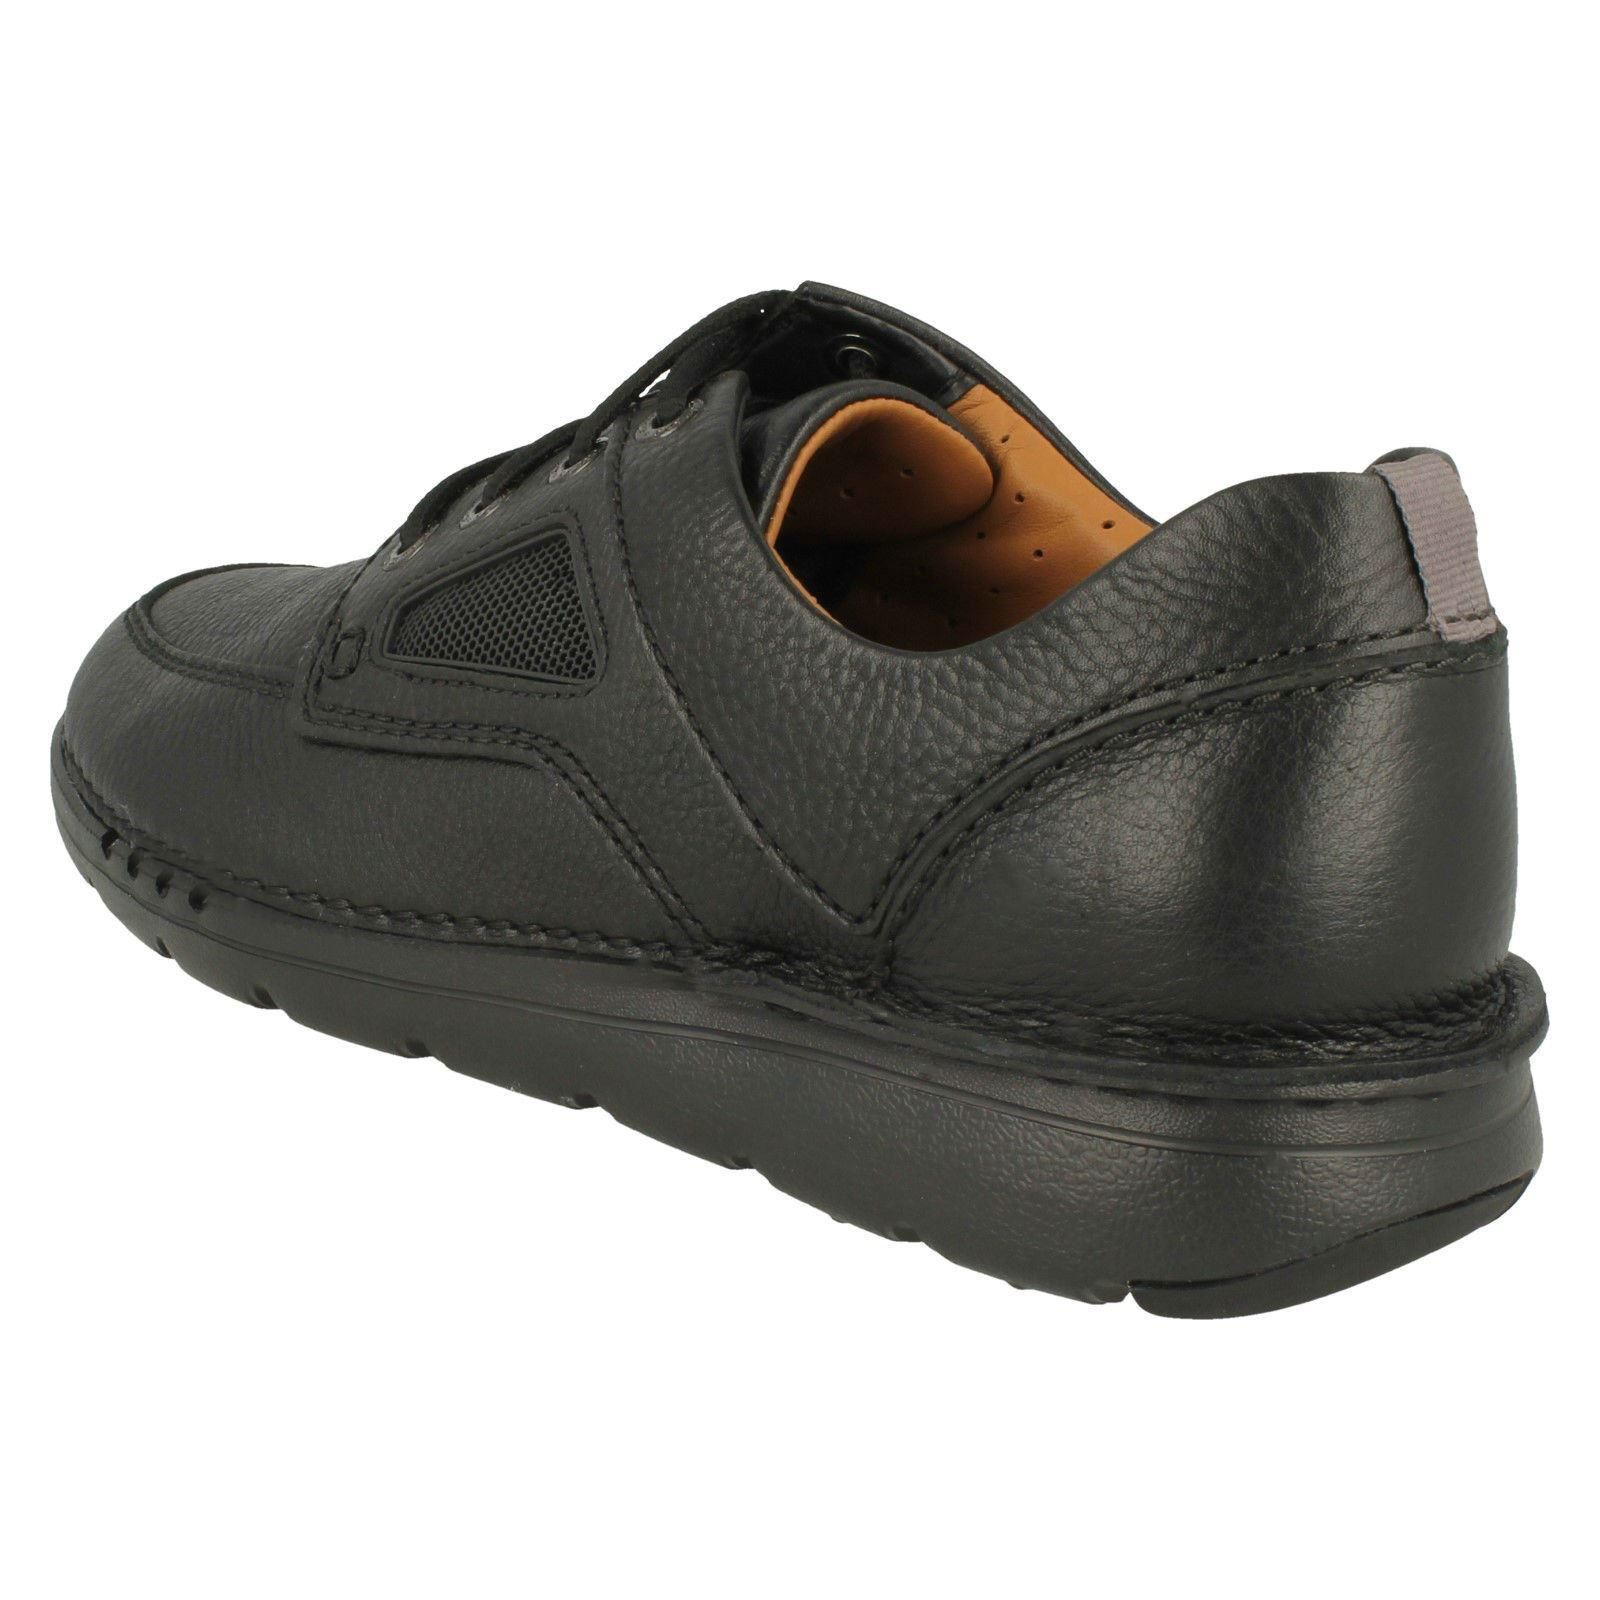 Da Uomo Clarks Casual Con Lacci   unnature Sportive-tempo unnature  6fd60b